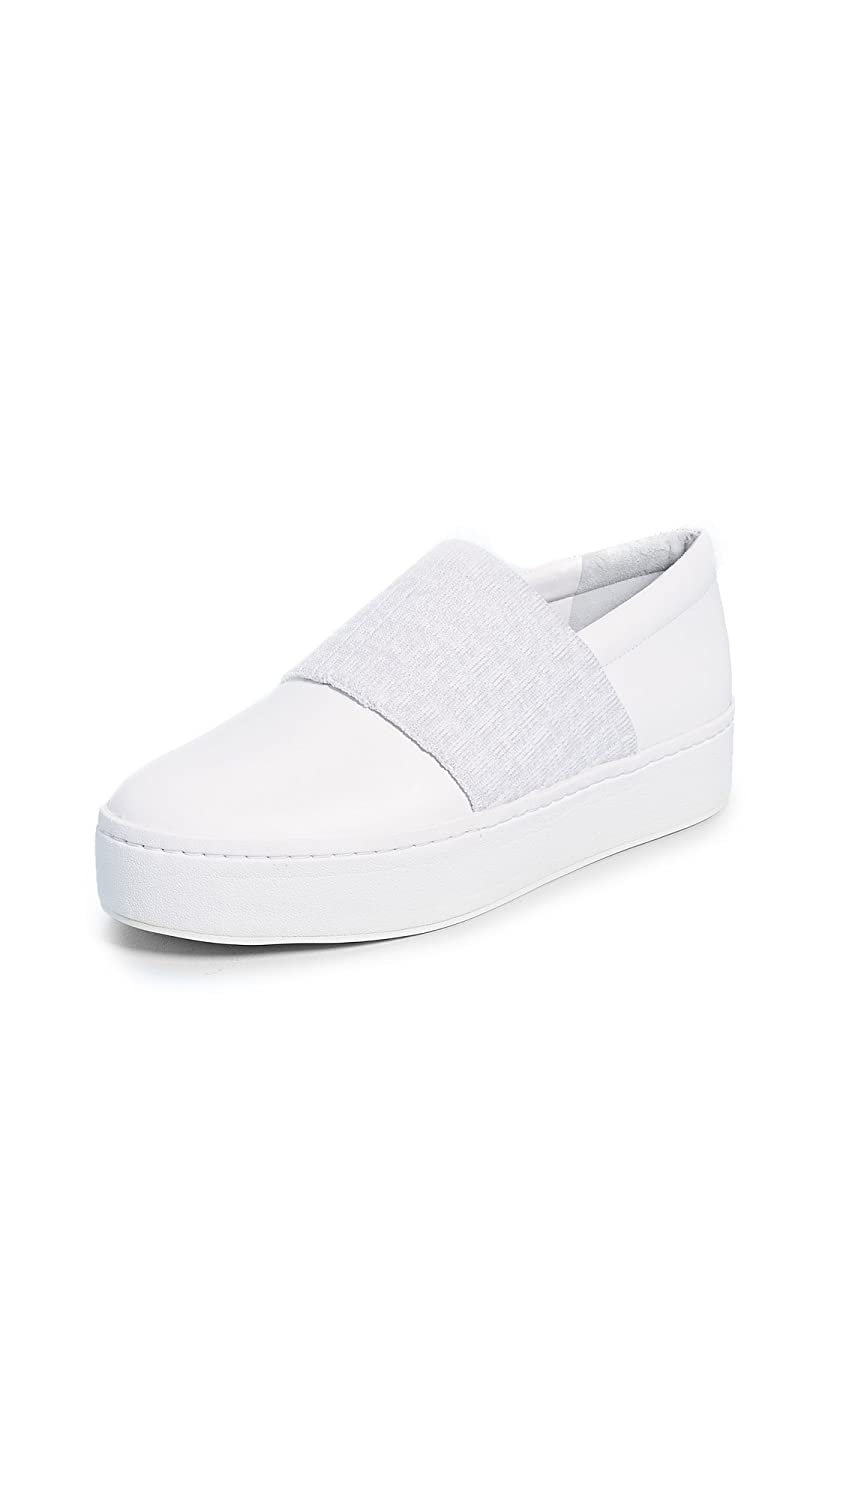 Vince Women's Weadon Slip On Sneakers B078Y9DX2Z 6.5 M US|Horchata